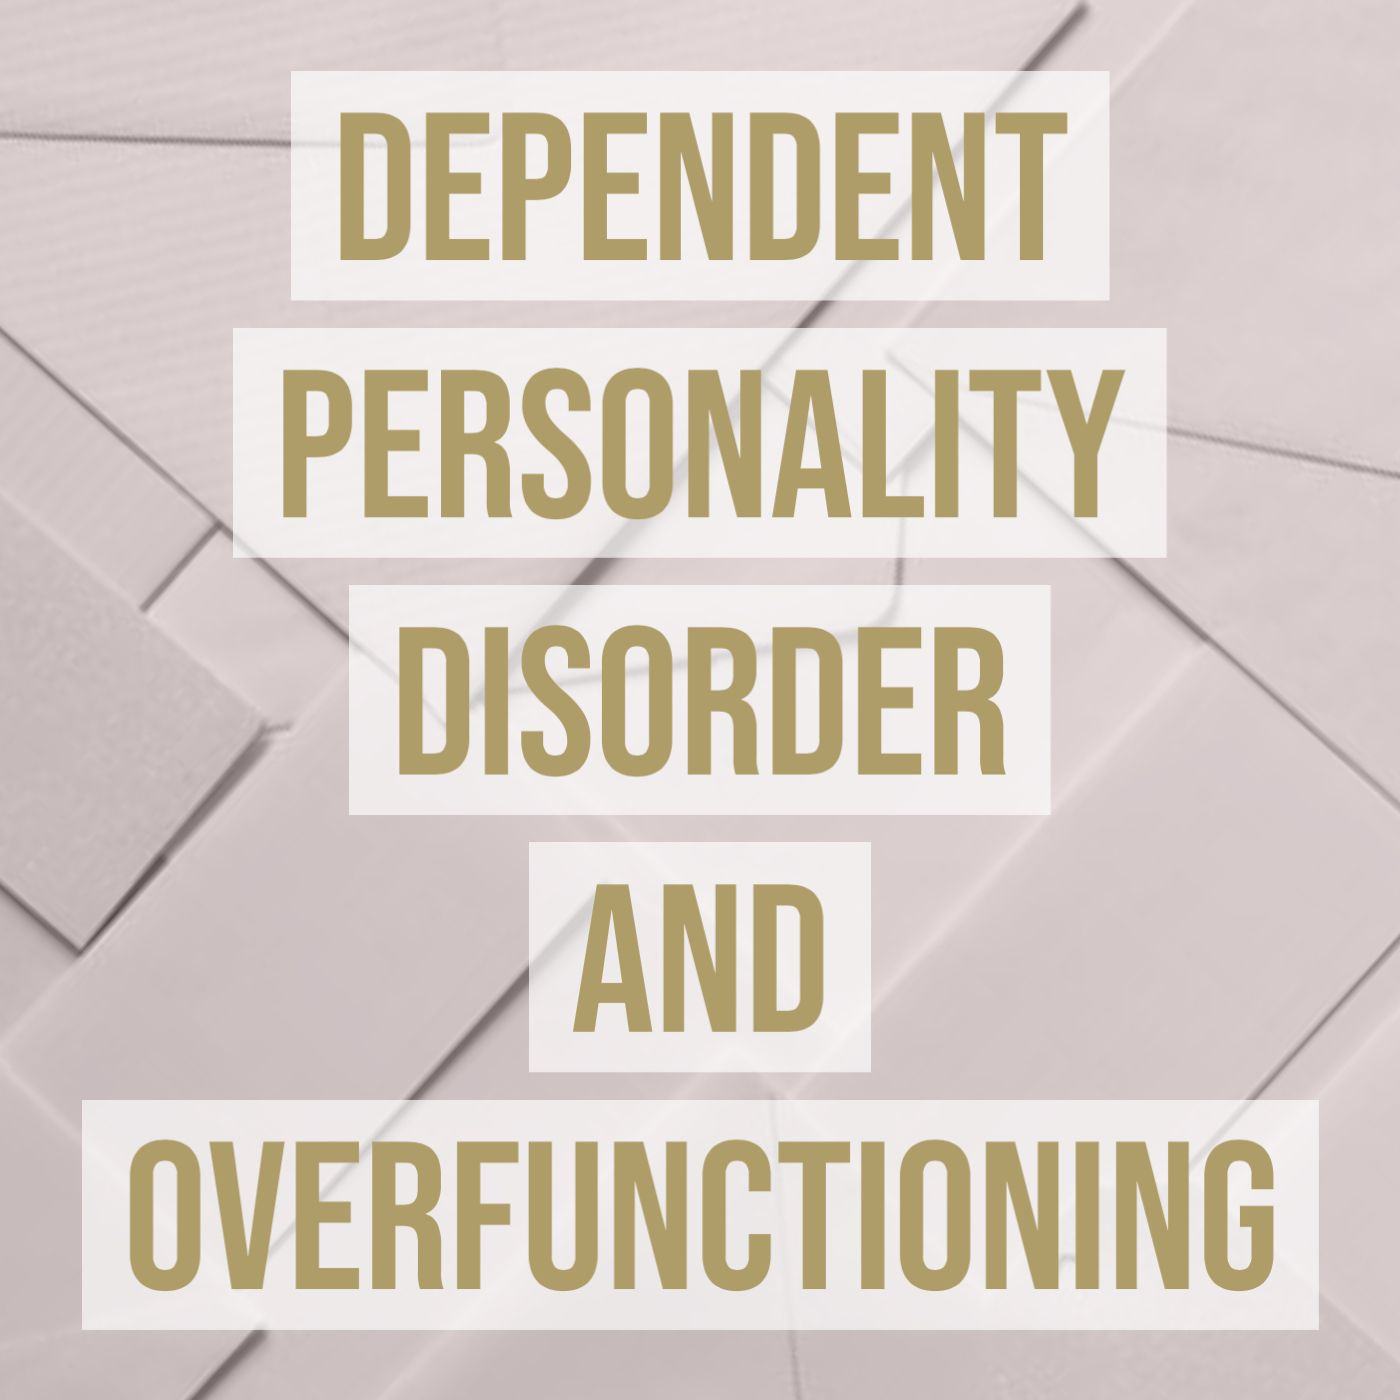 Dependent Personality Disorder and Overfunctioning